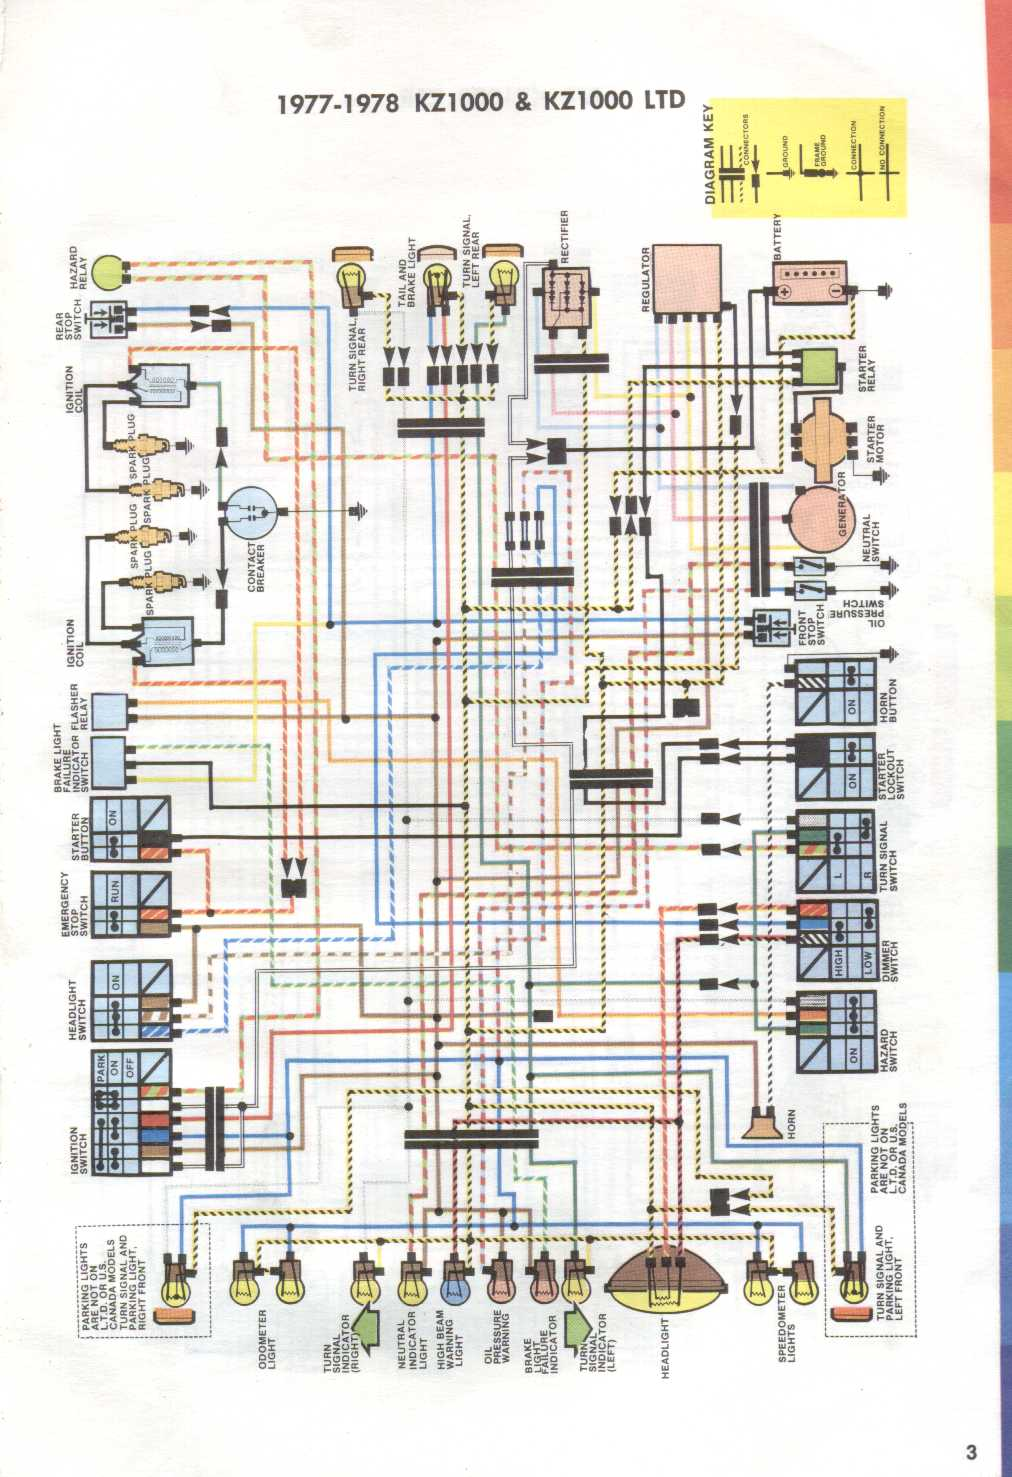 wiring diagram for 1977 1978 kawasaki kz1000 and kz1000ltd evan rh cycles evanfell com 1978 kawasaki kz1000 wiring diagram 1978 kawasaki kz650 wiring diagram